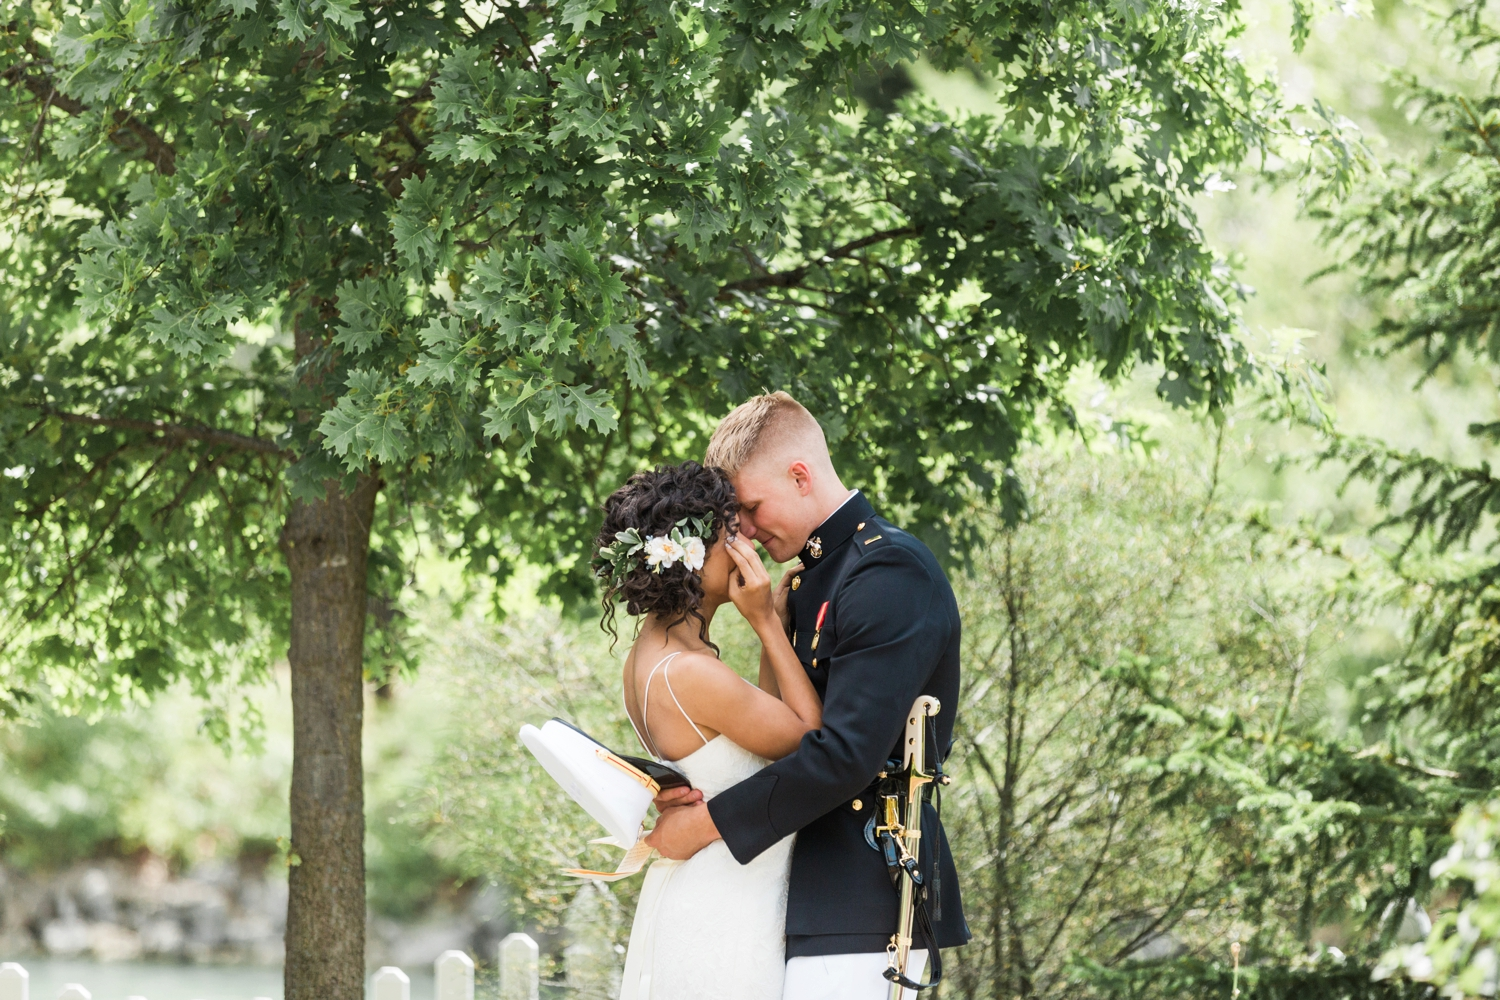 Wedding-at-The-Savannah-Center-West-Chester-Ohio-Photography-Chloe-Luka-Photography_7404.jpg